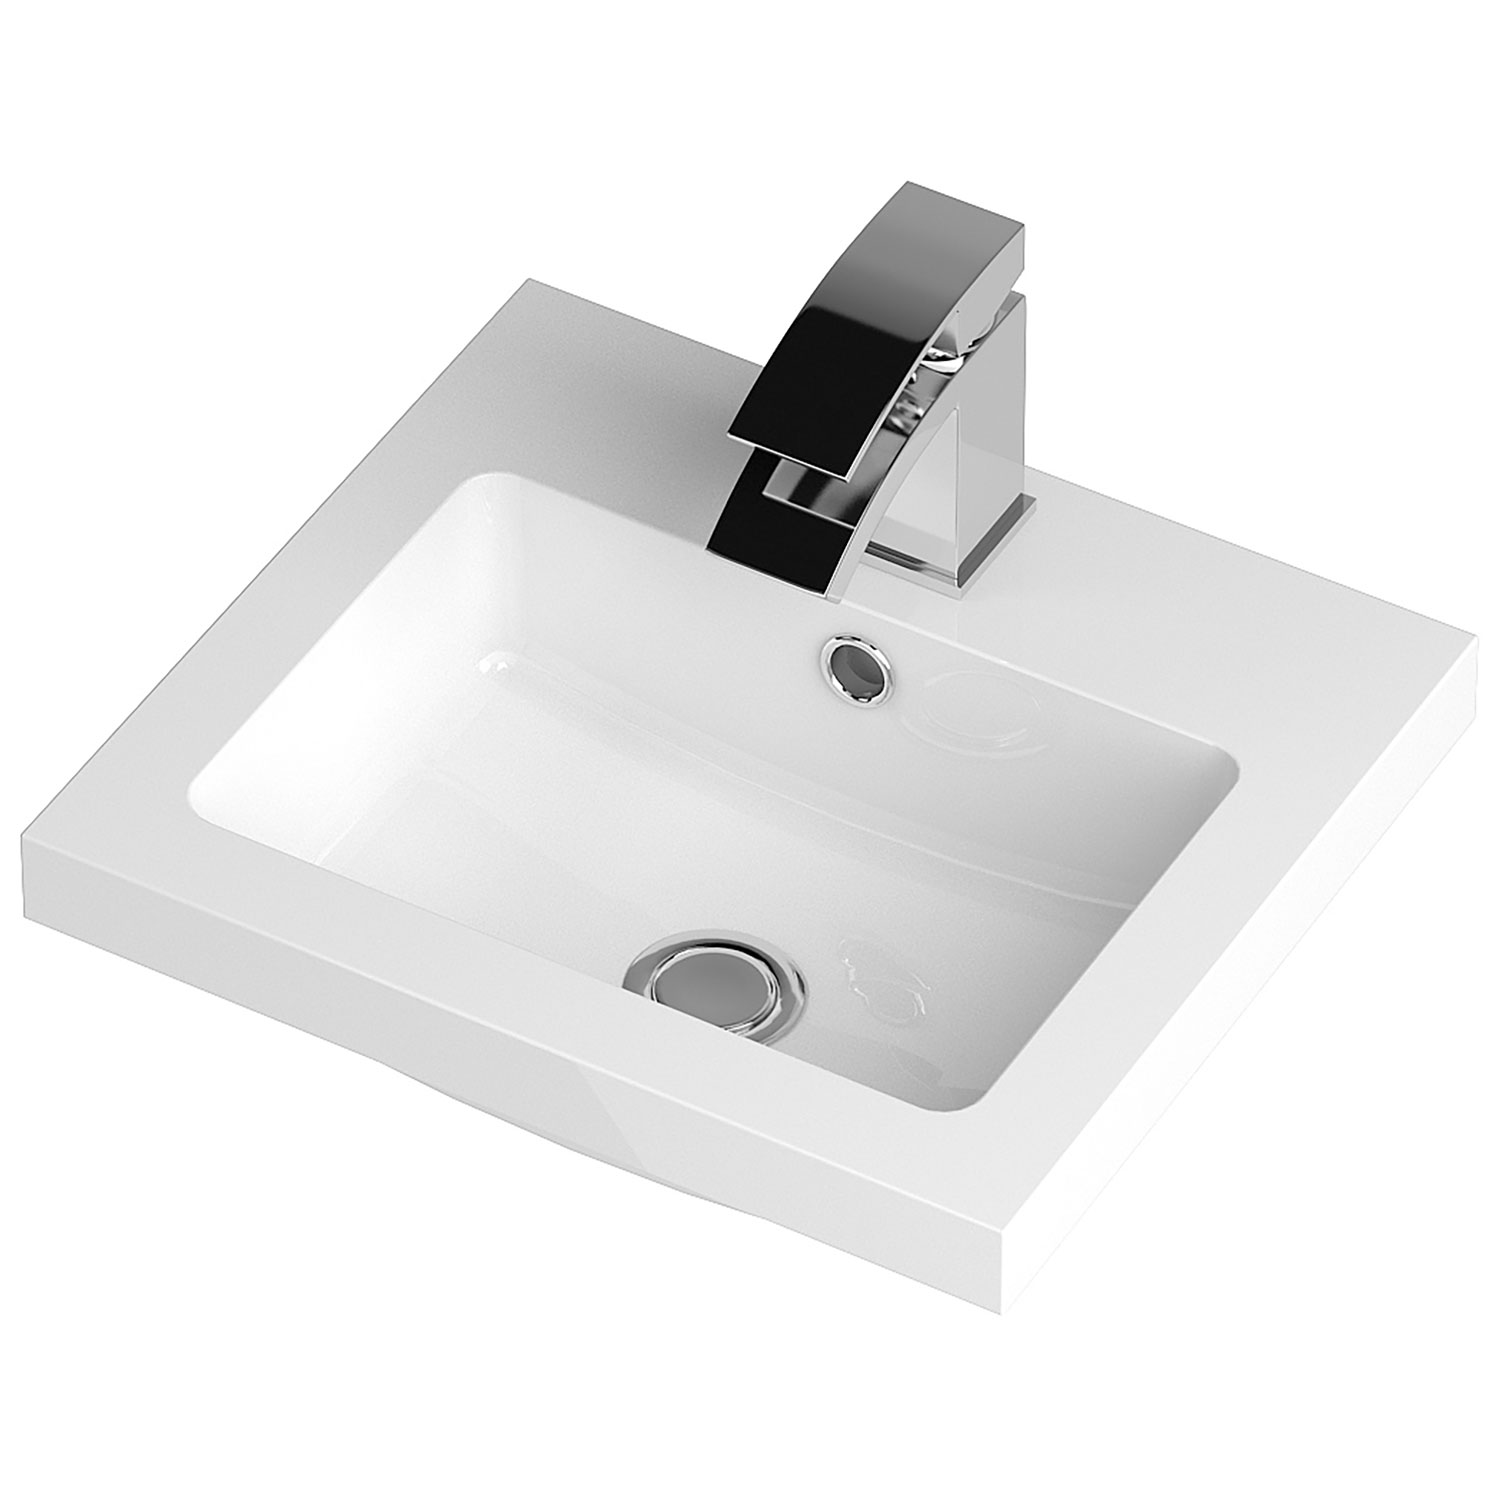 Hudson Reed Apollo Floor Standing Vanity Unit and Basin 405mm Wide Gloss Cashmere 1 Tap Hole